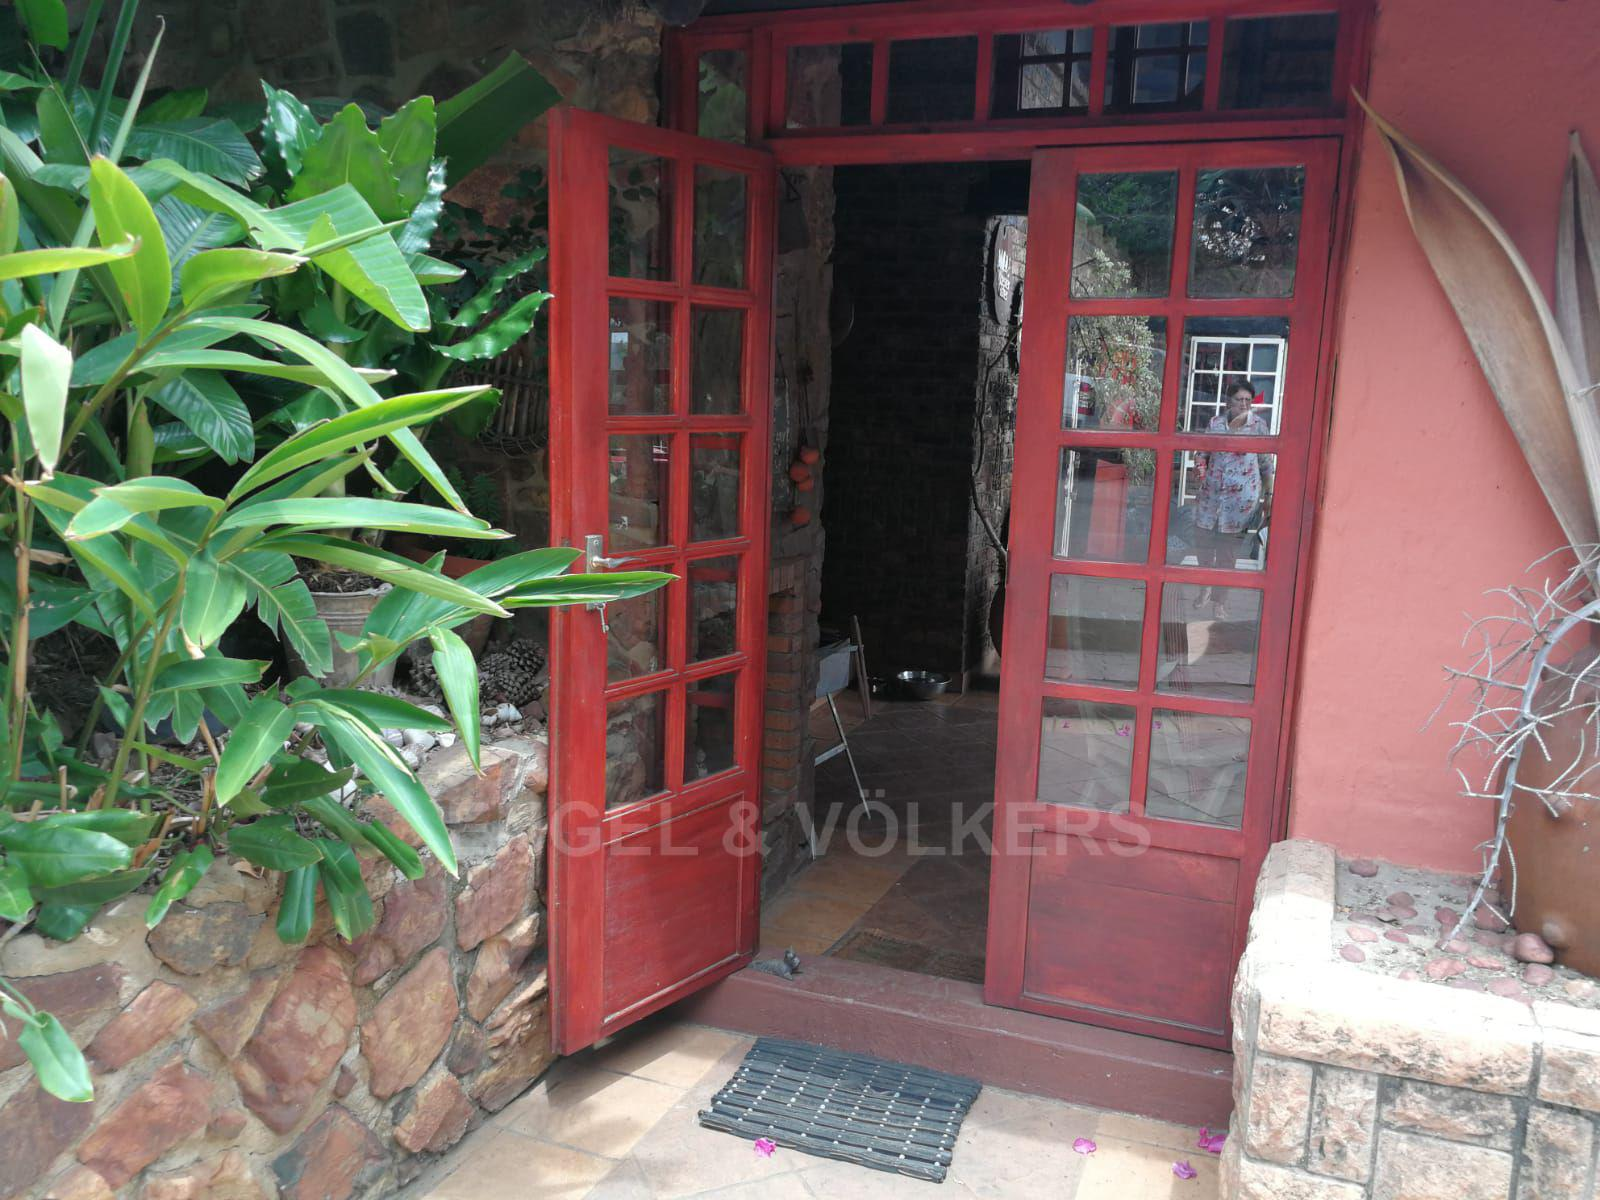 Land in Hartbeespoort Dam Area - Welcoming front door